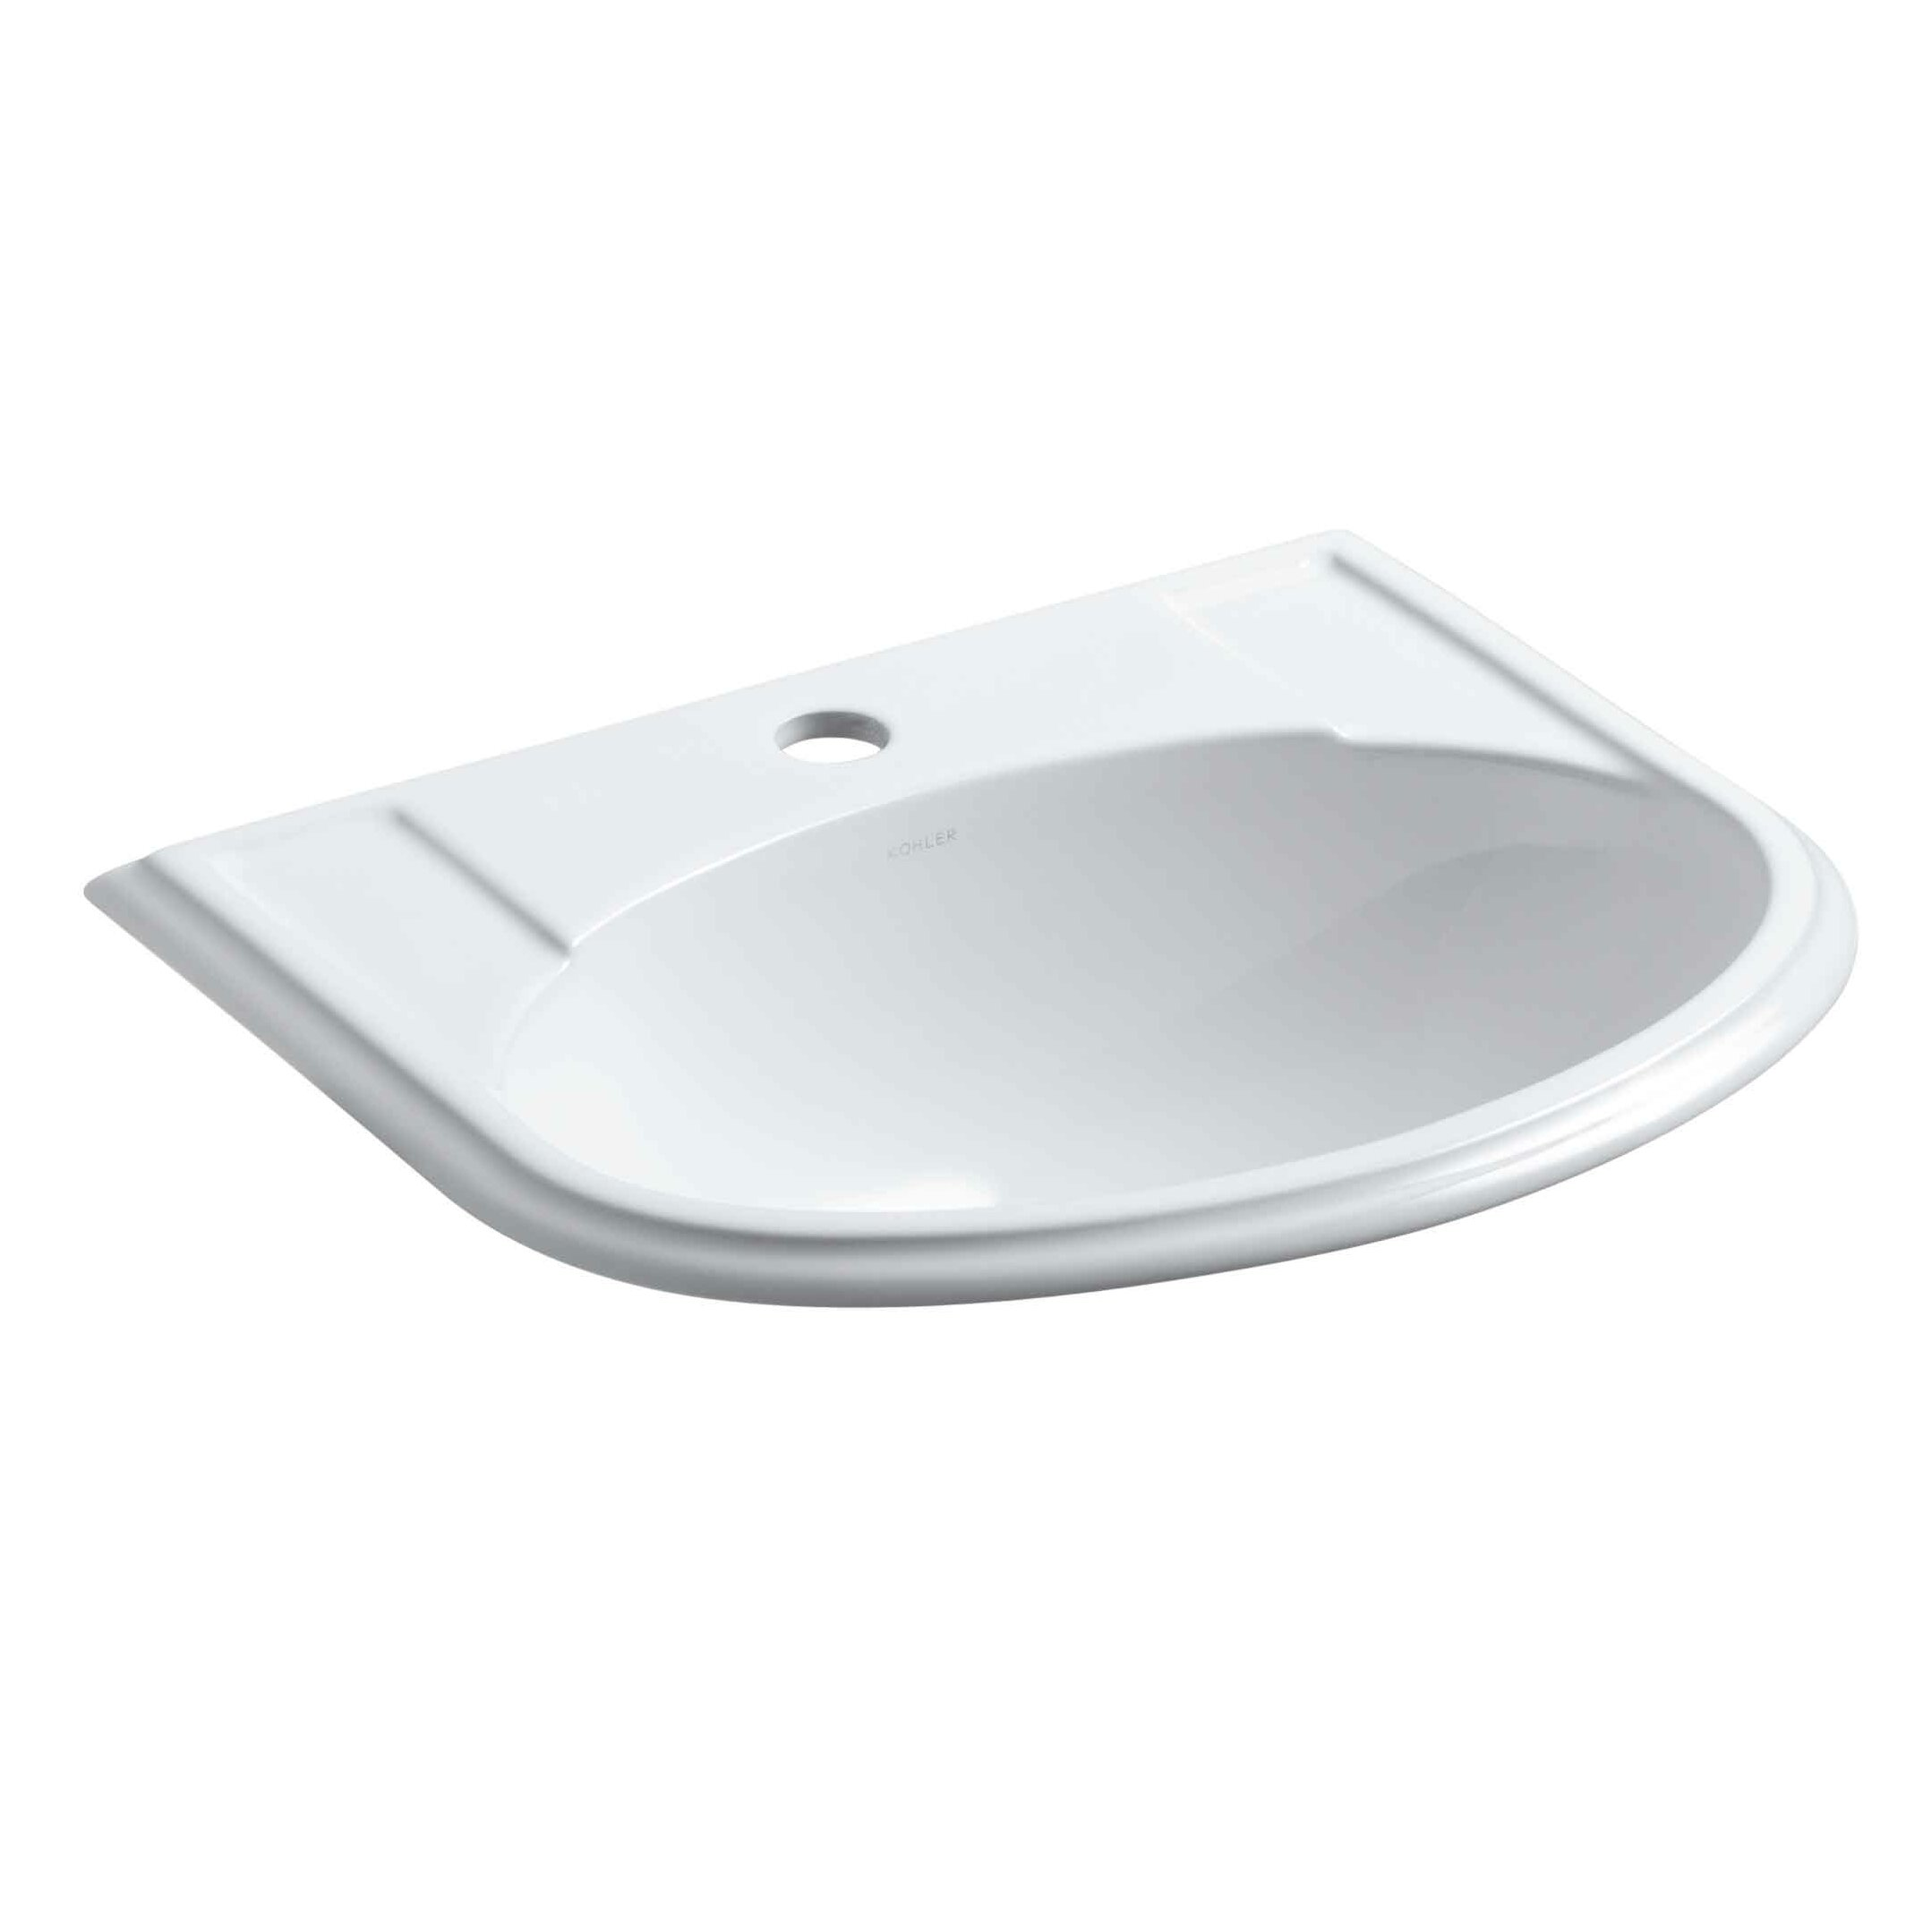 Kohler Devonshire Drop-In Bathroom Sink with Single Faucet Hole ...